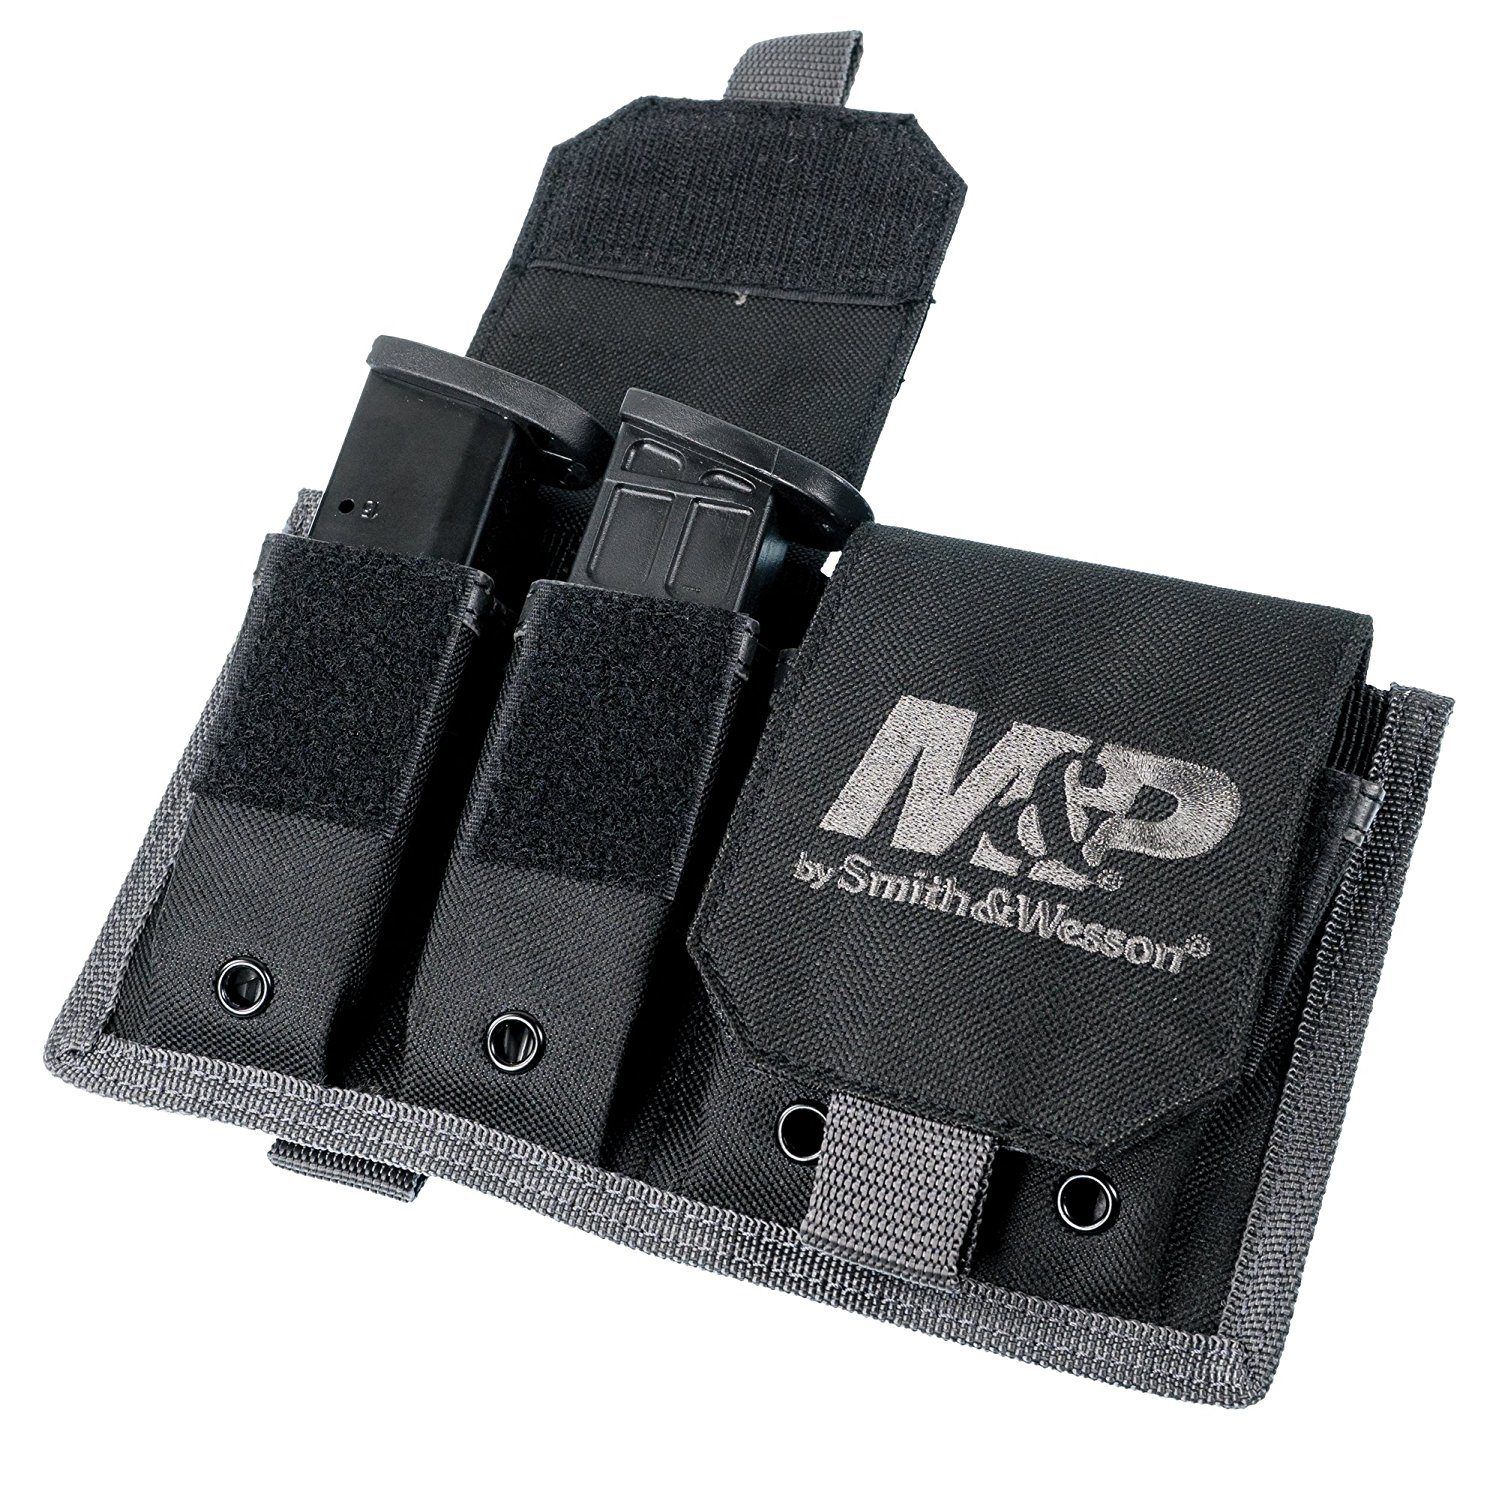 Smith & Wesson Accessories M&P By Smith&Wesson 110271 Pro Tac 8 Pistol Magazine Pouch, 8 Pouch